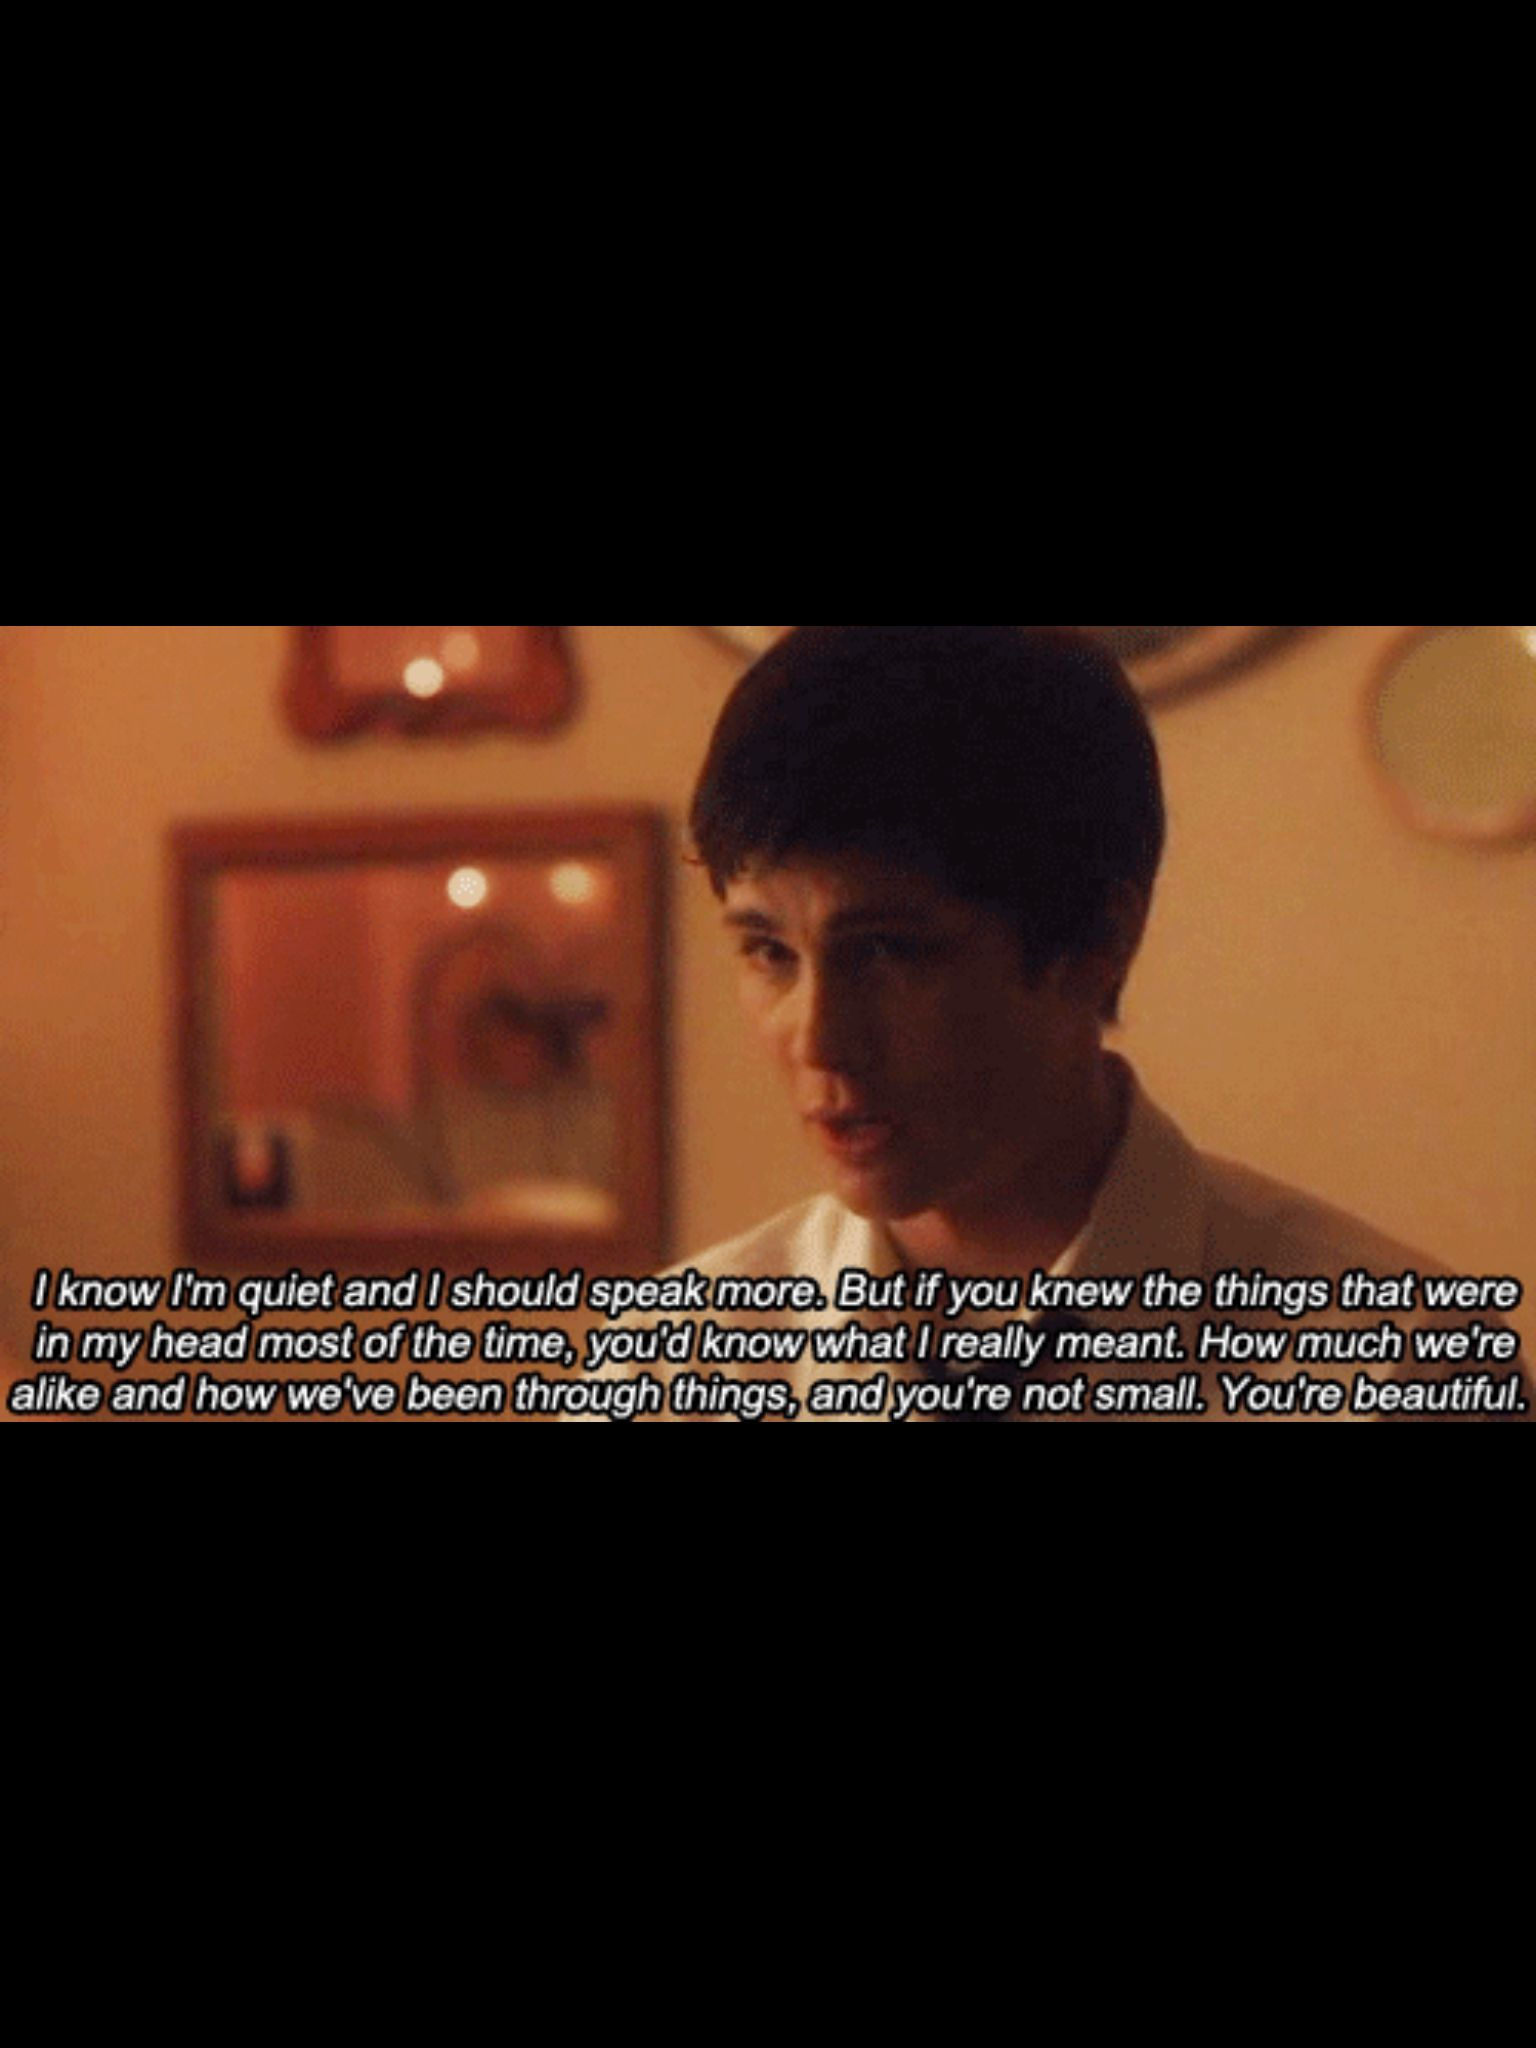 words from perks of being a wallflower tv books and